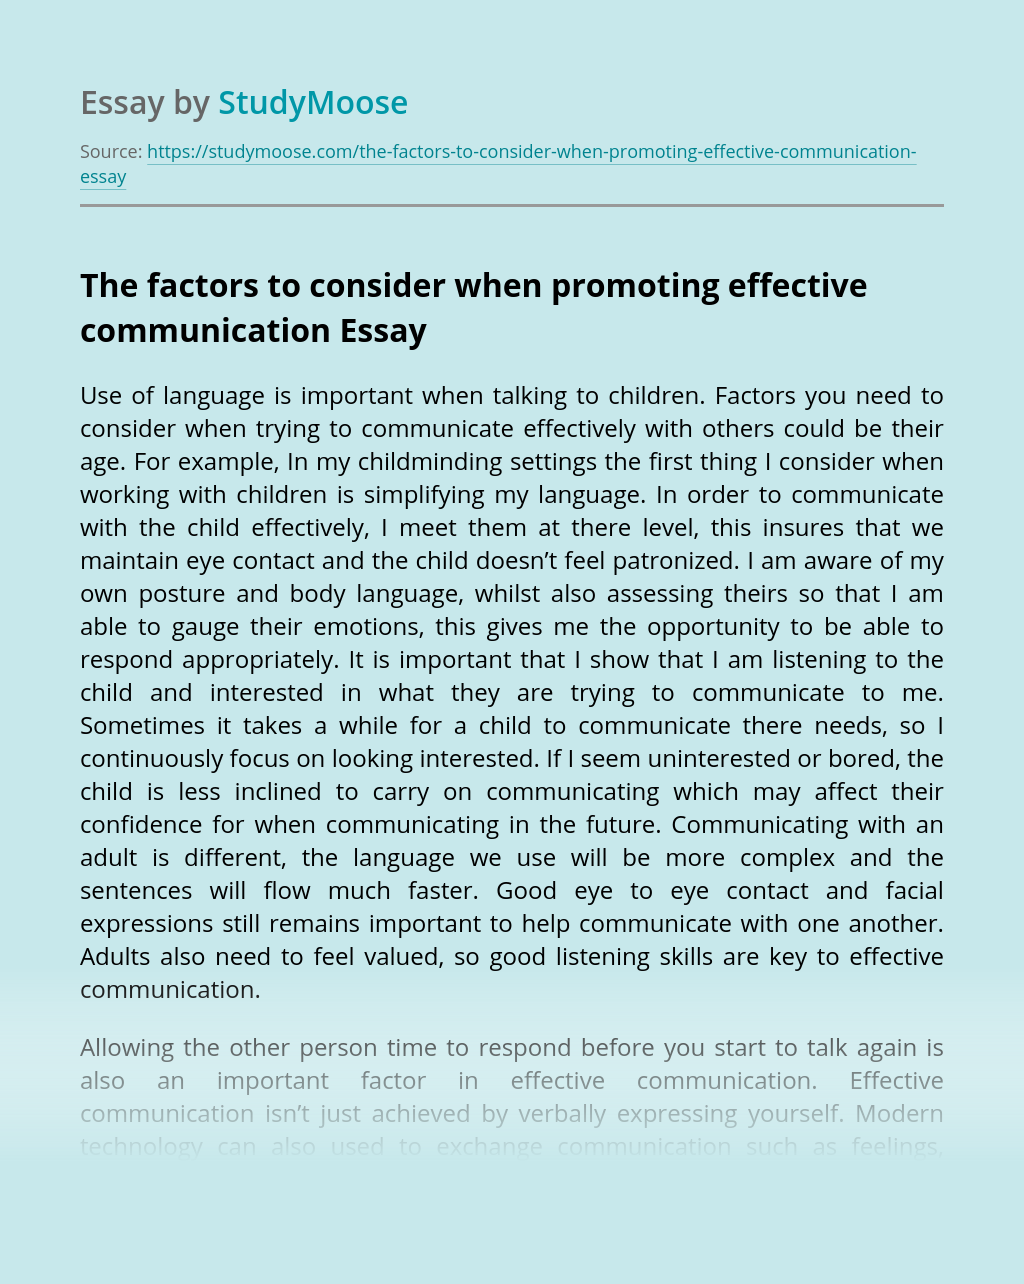 The factors to consider when promoting effective communication